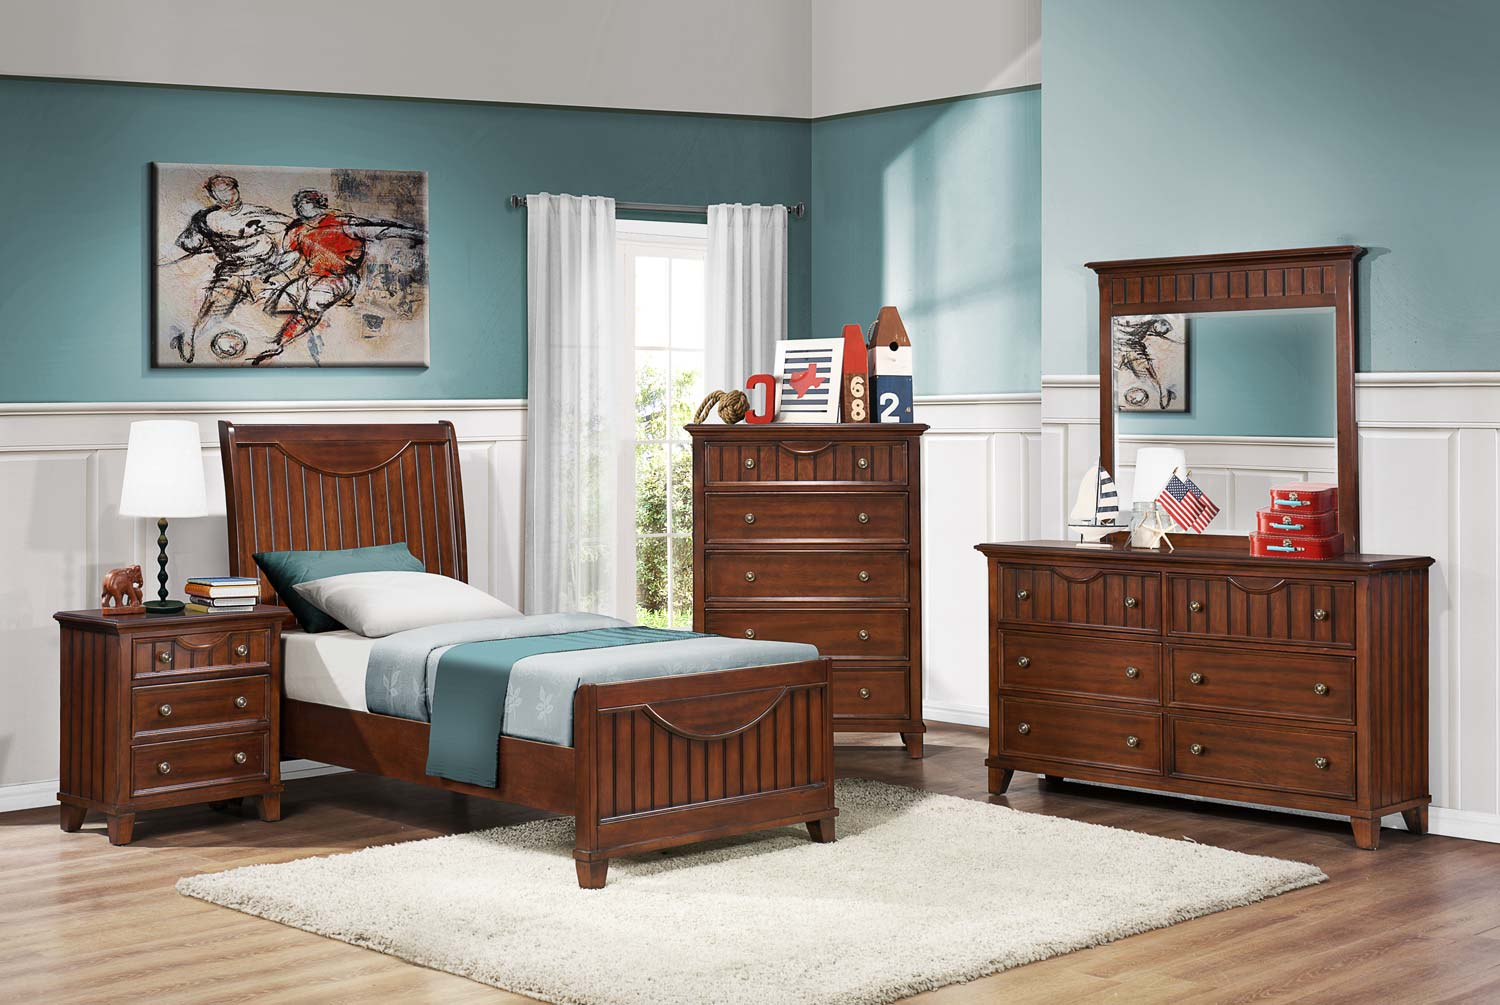 Homelegance alyssa youth bedroom set warm brown cherry for Youth bedroom furniture sets